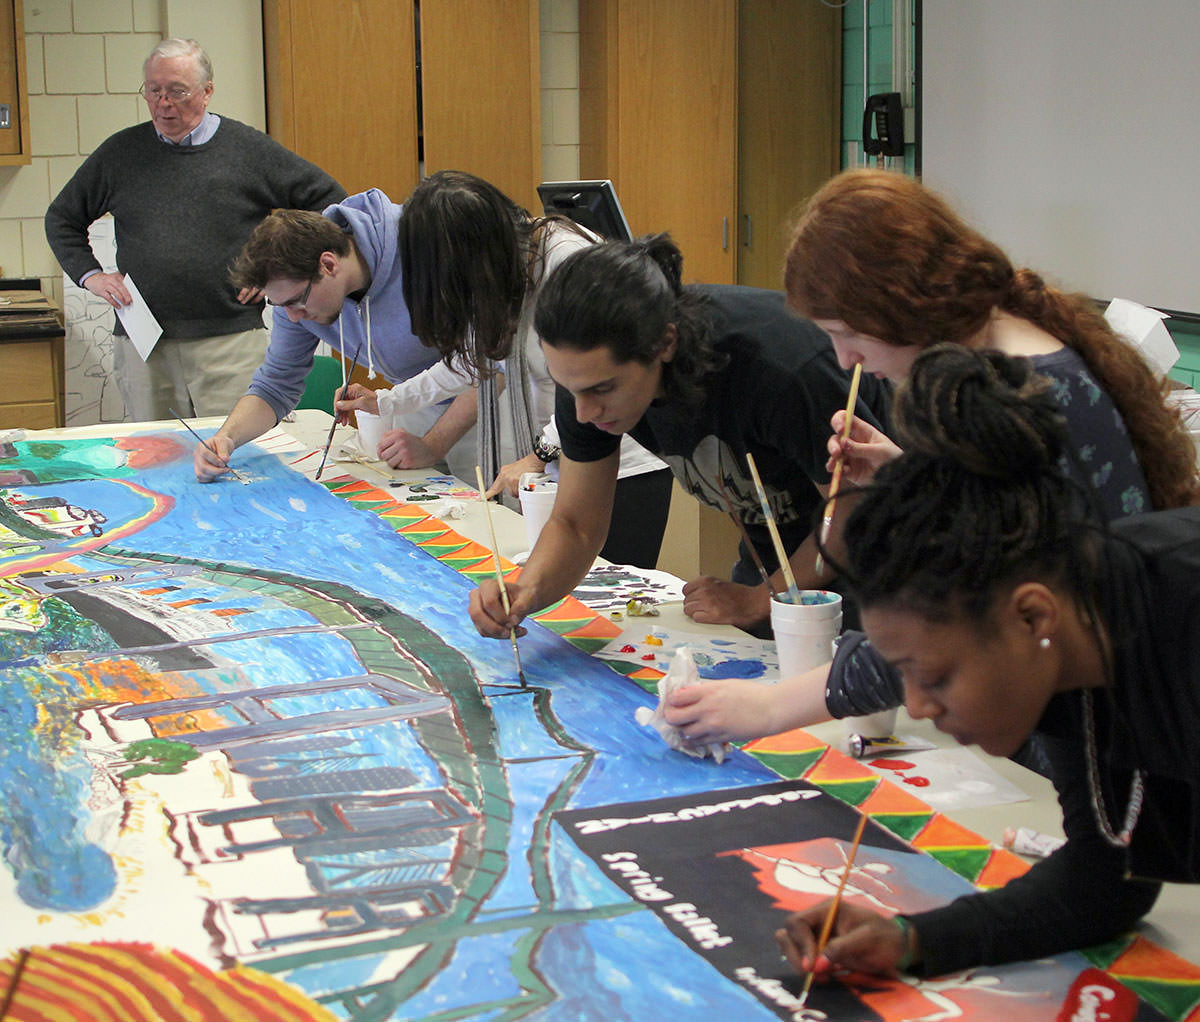 James Chisholm and students from his NSCC drawing class working on the mural